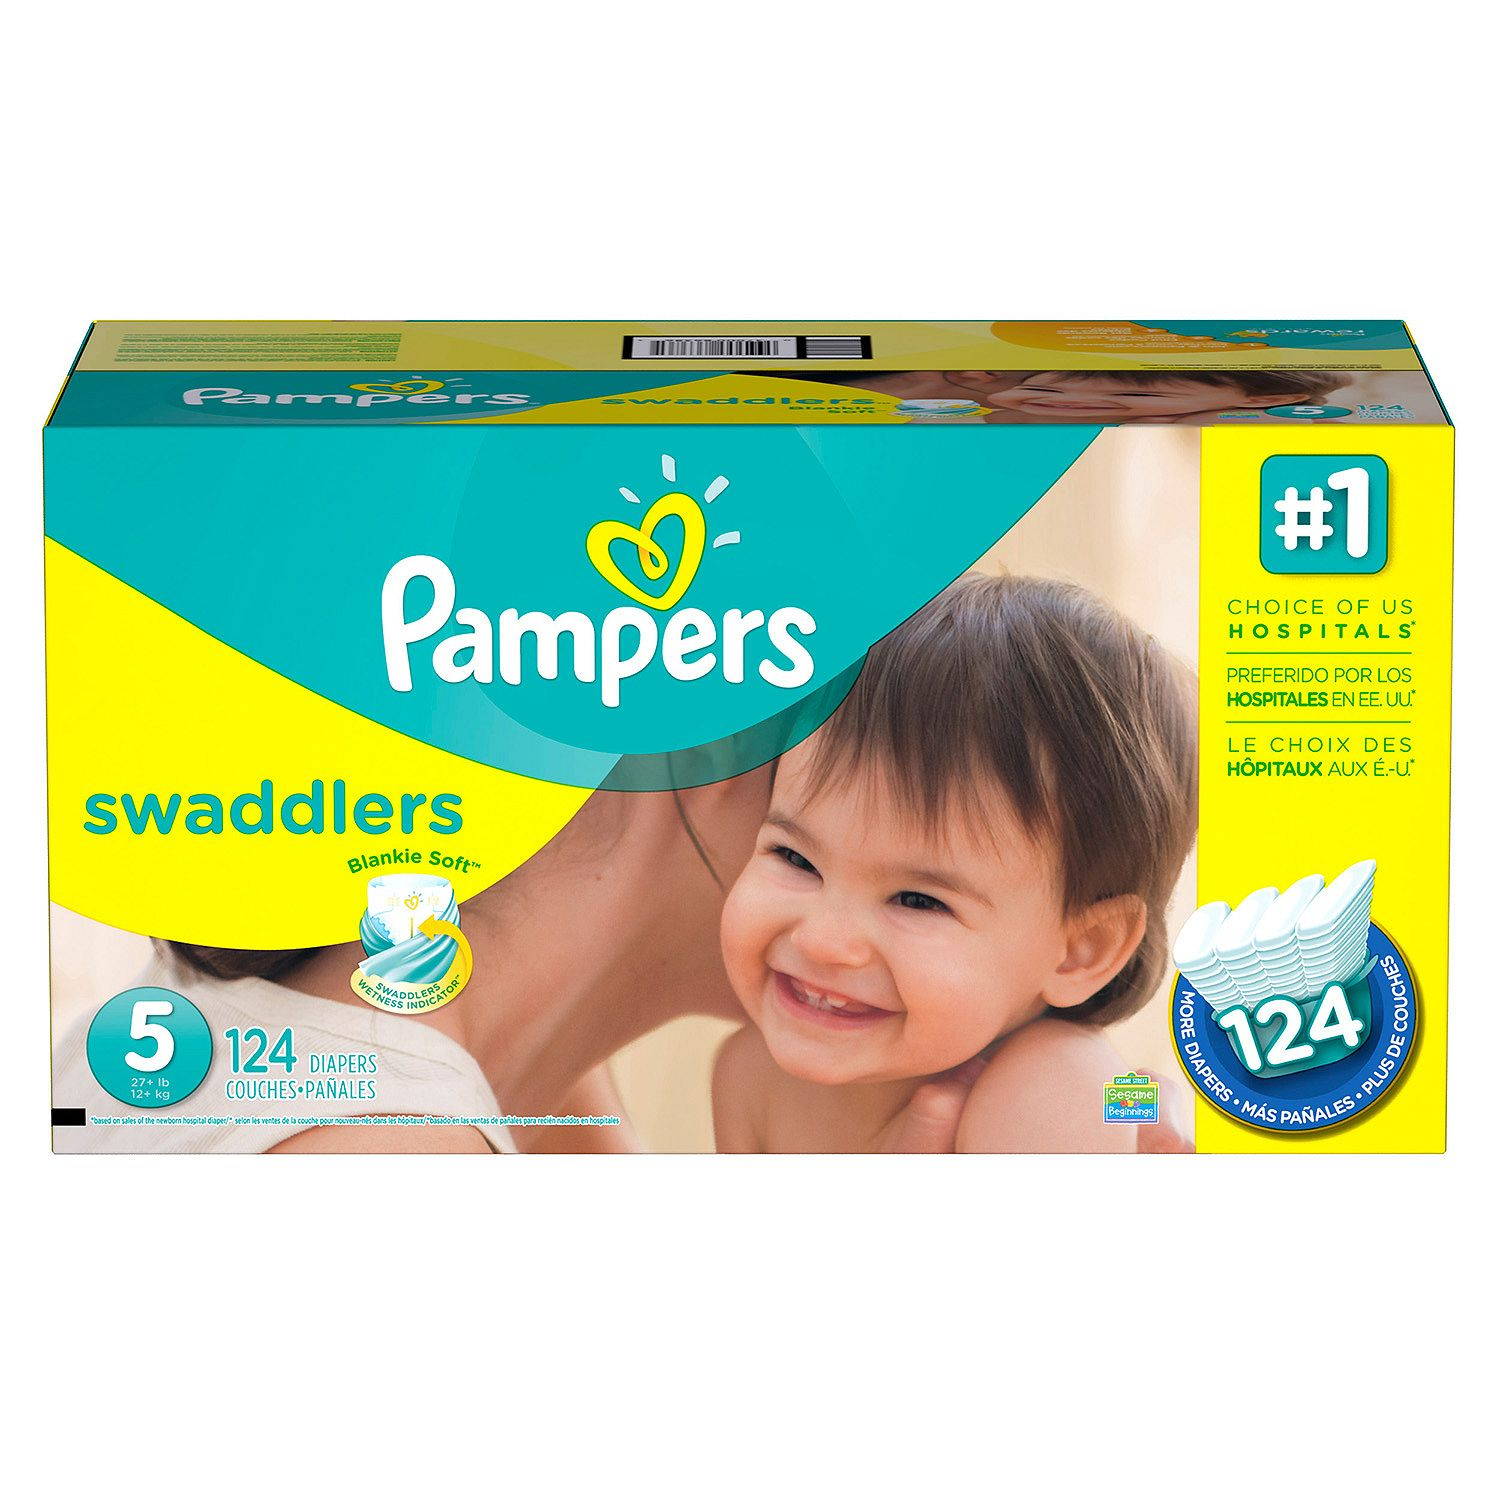 [Best Branded Diapers]-'Pampers' Swaddlers Diapers Economy Pack Size 5 - 124 ct. ( Weight 27+ lb.) - Bulk Qty, Free Shipping - Comfortable, Soft, No licking & Good nite Diapers